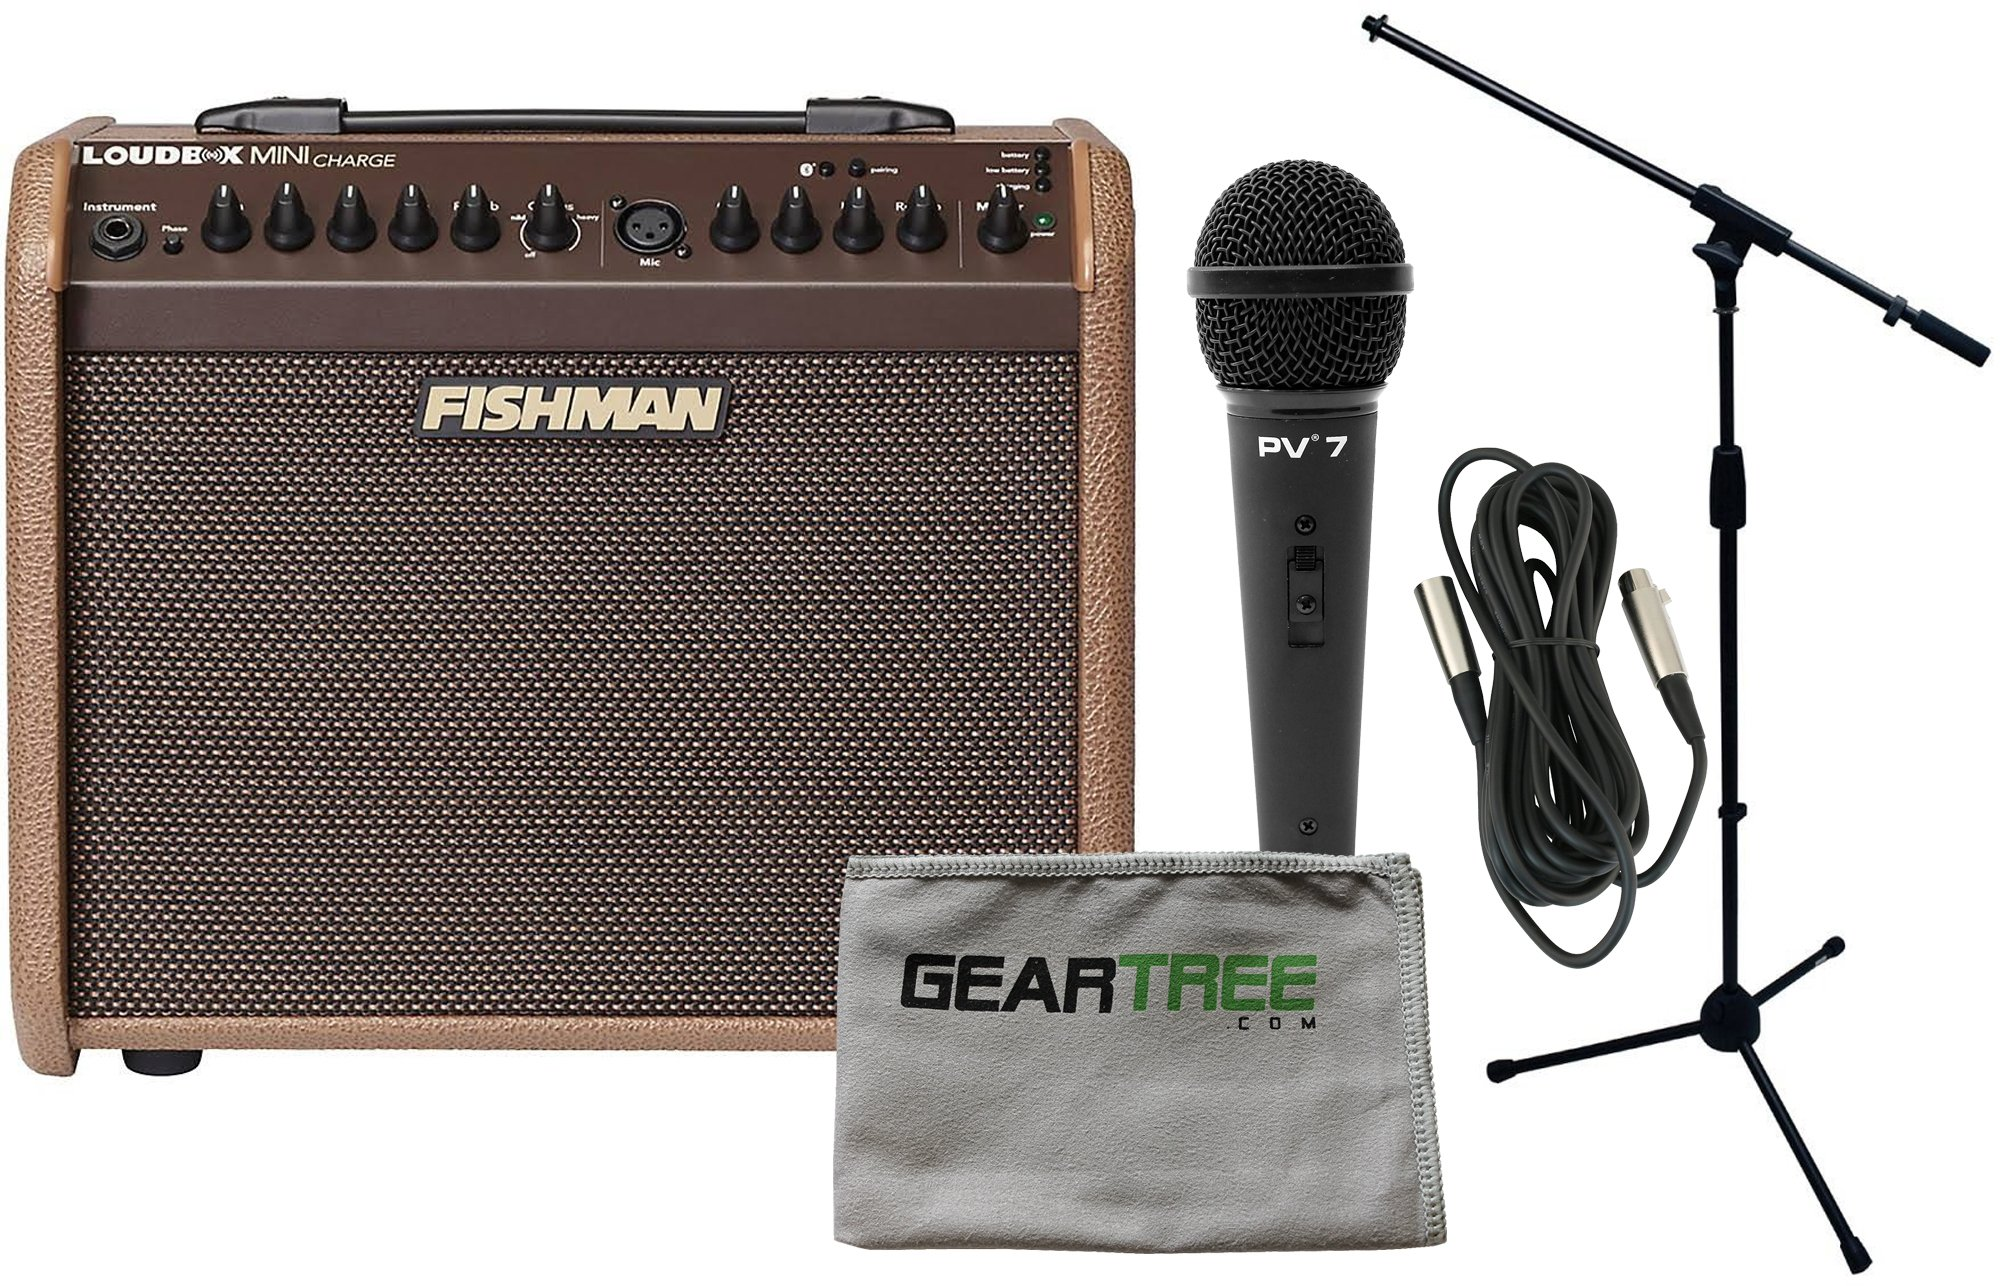 Fishman Loudbox Mini Charge Battery Powered Acoustic Guitar Amp Bundle